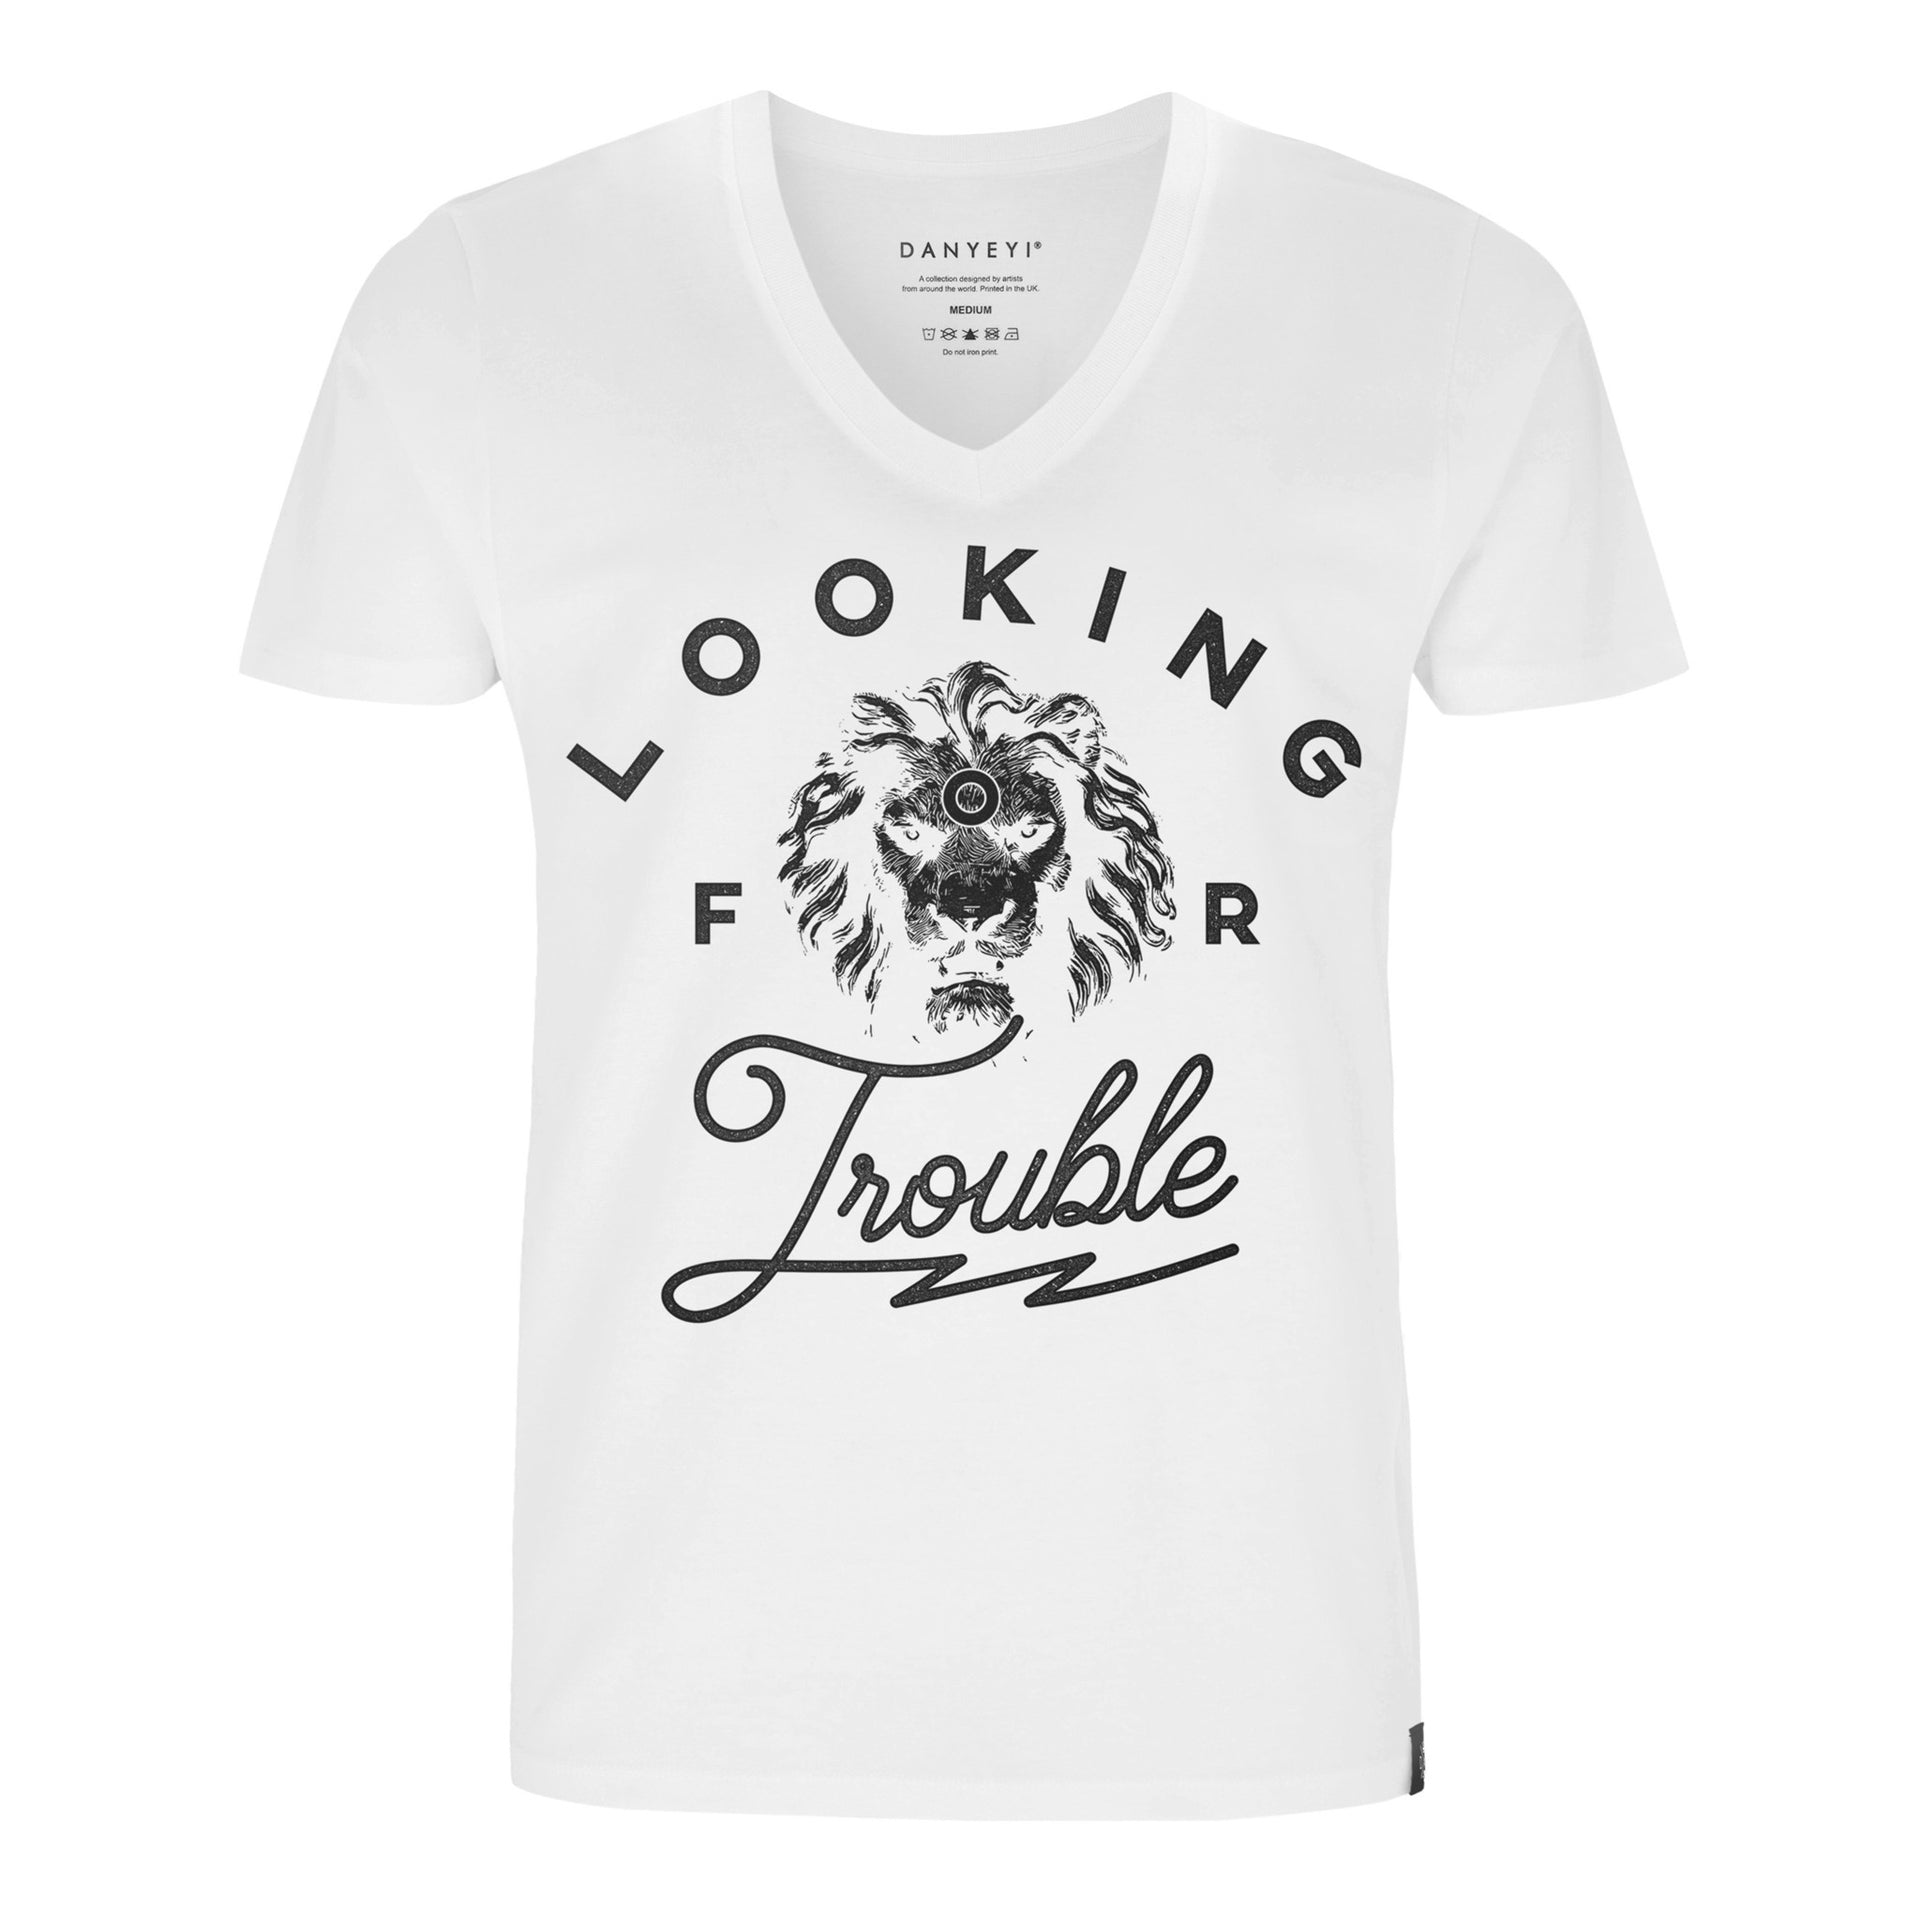 Trouble - White / Black - Crew & Deep V Neck